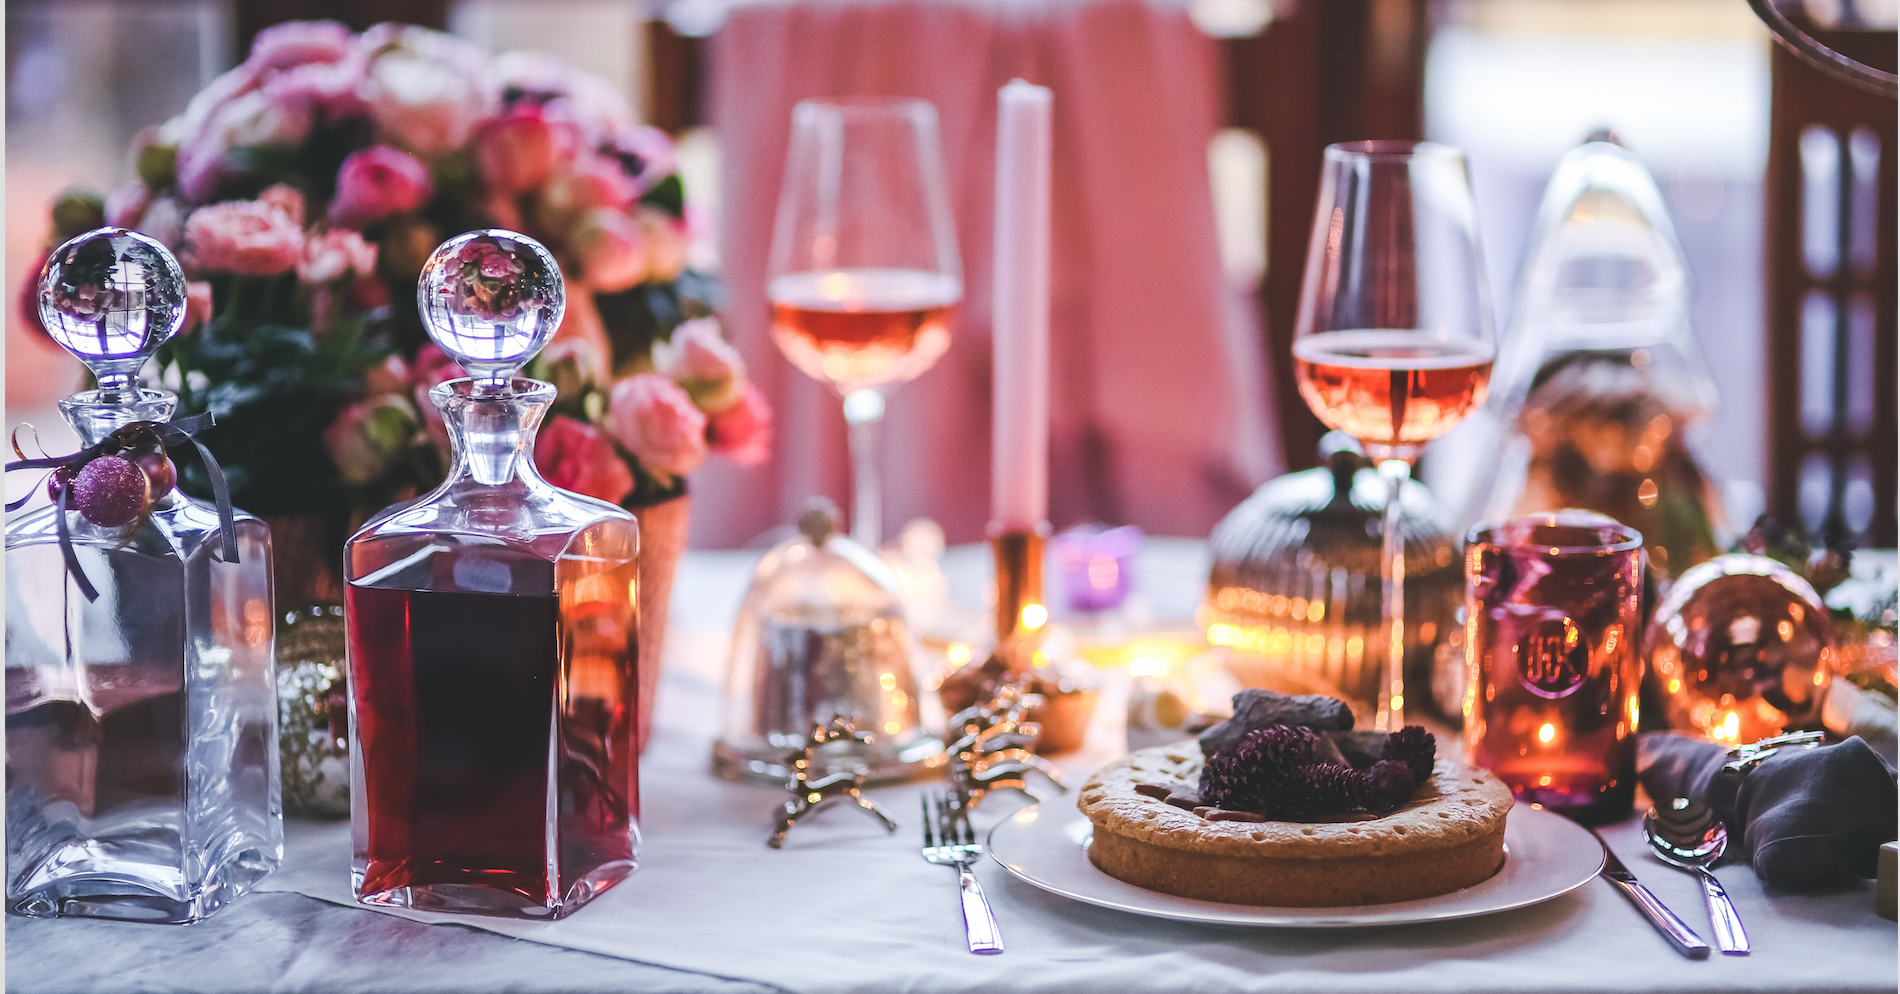 Festive Dining Numbers Increase Year On Year